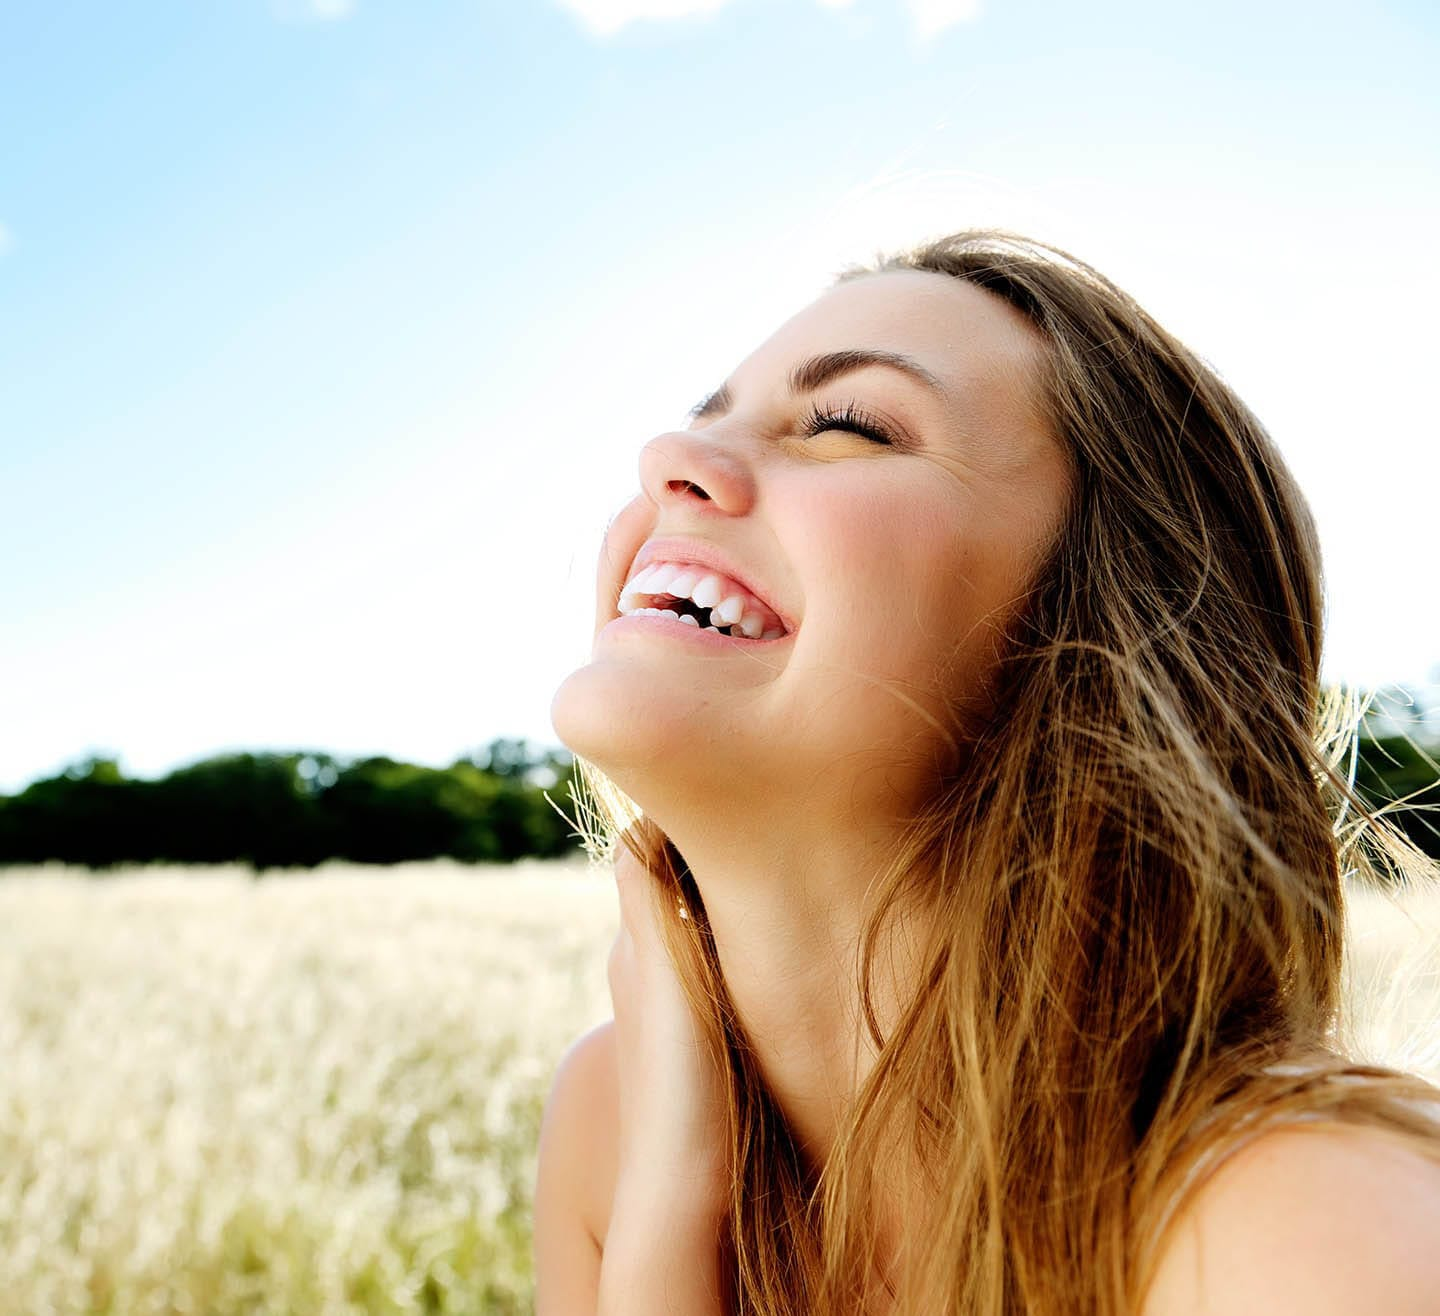 smiling woman in field